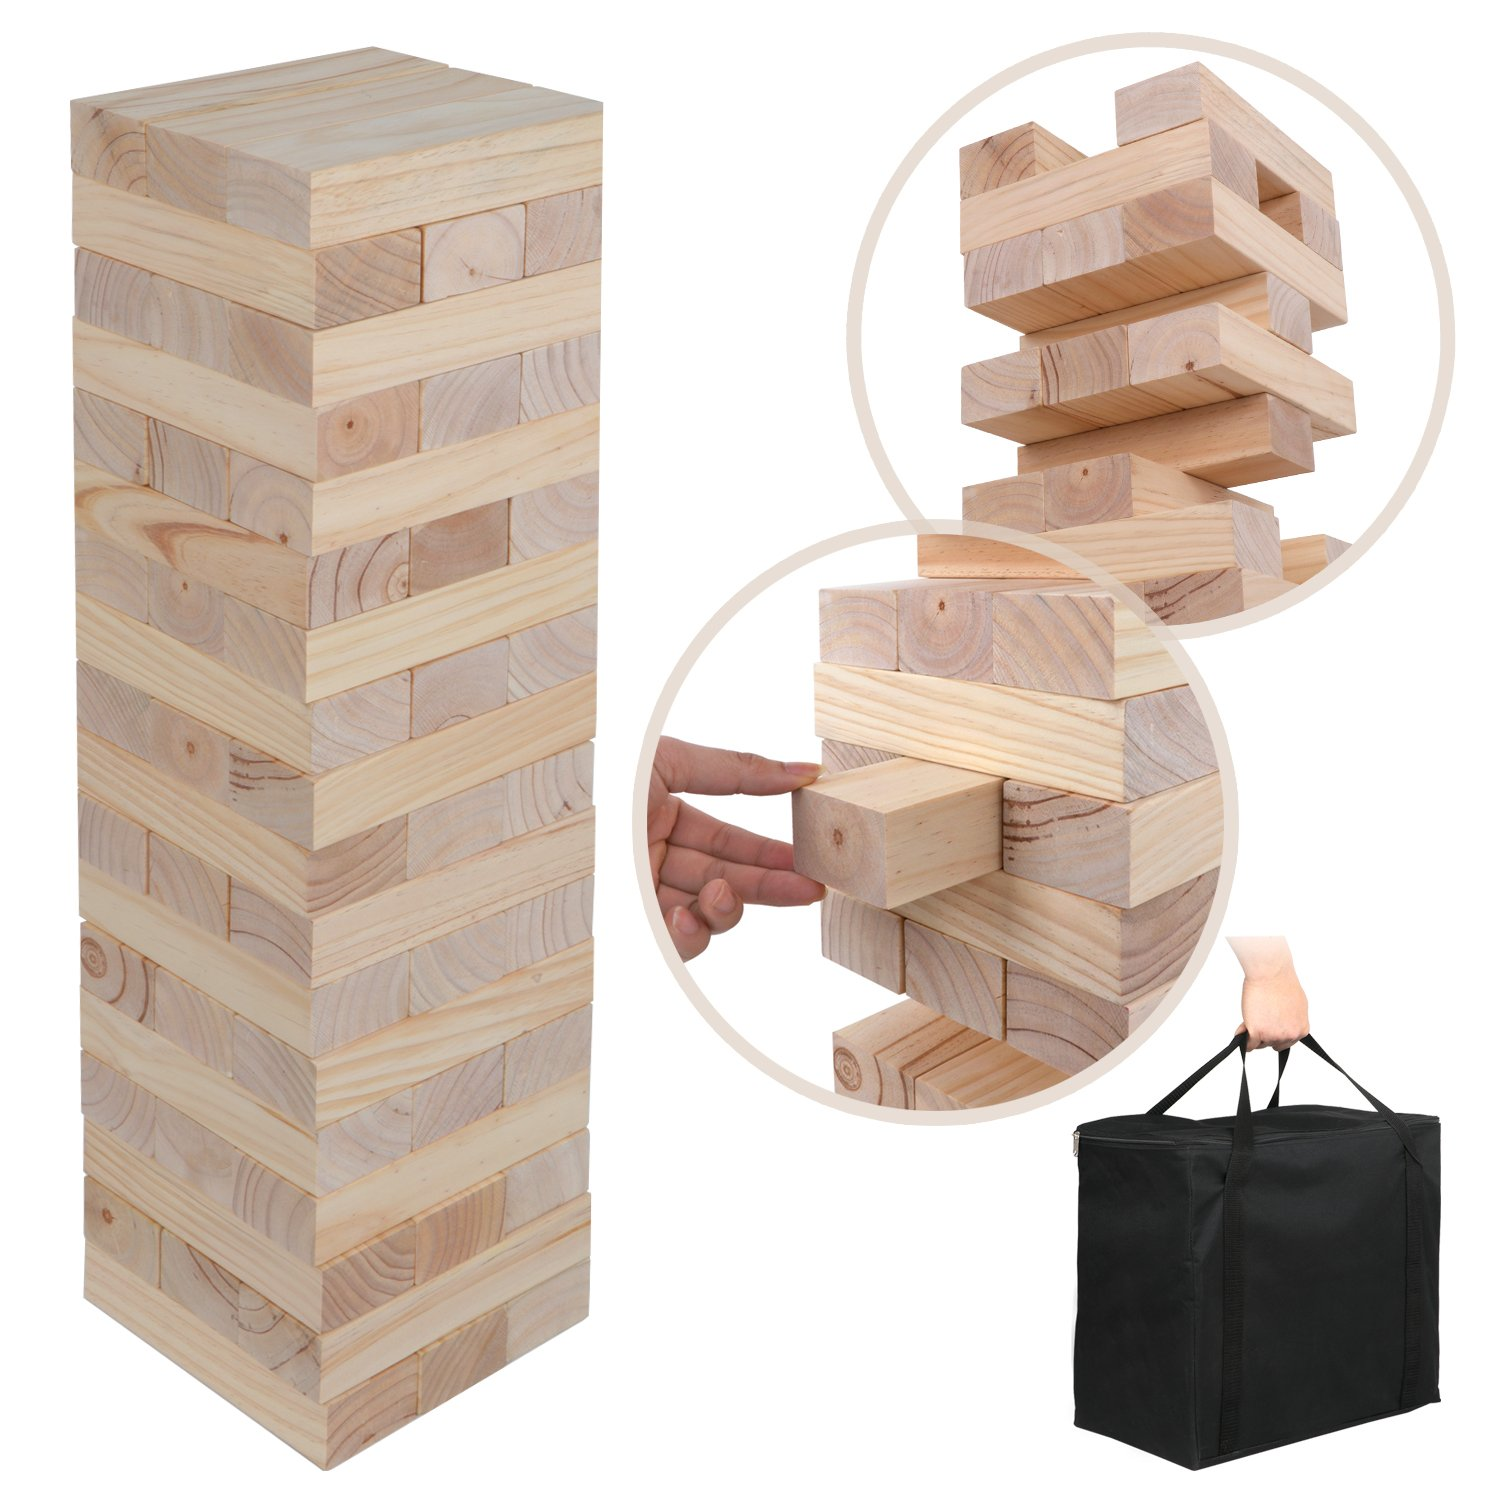 ZENY Giant Wooden Toppling Tower Jumbo Tumbling Timbers Stacking Block Sets with Carrying Bag Yard Games 54 Pieces